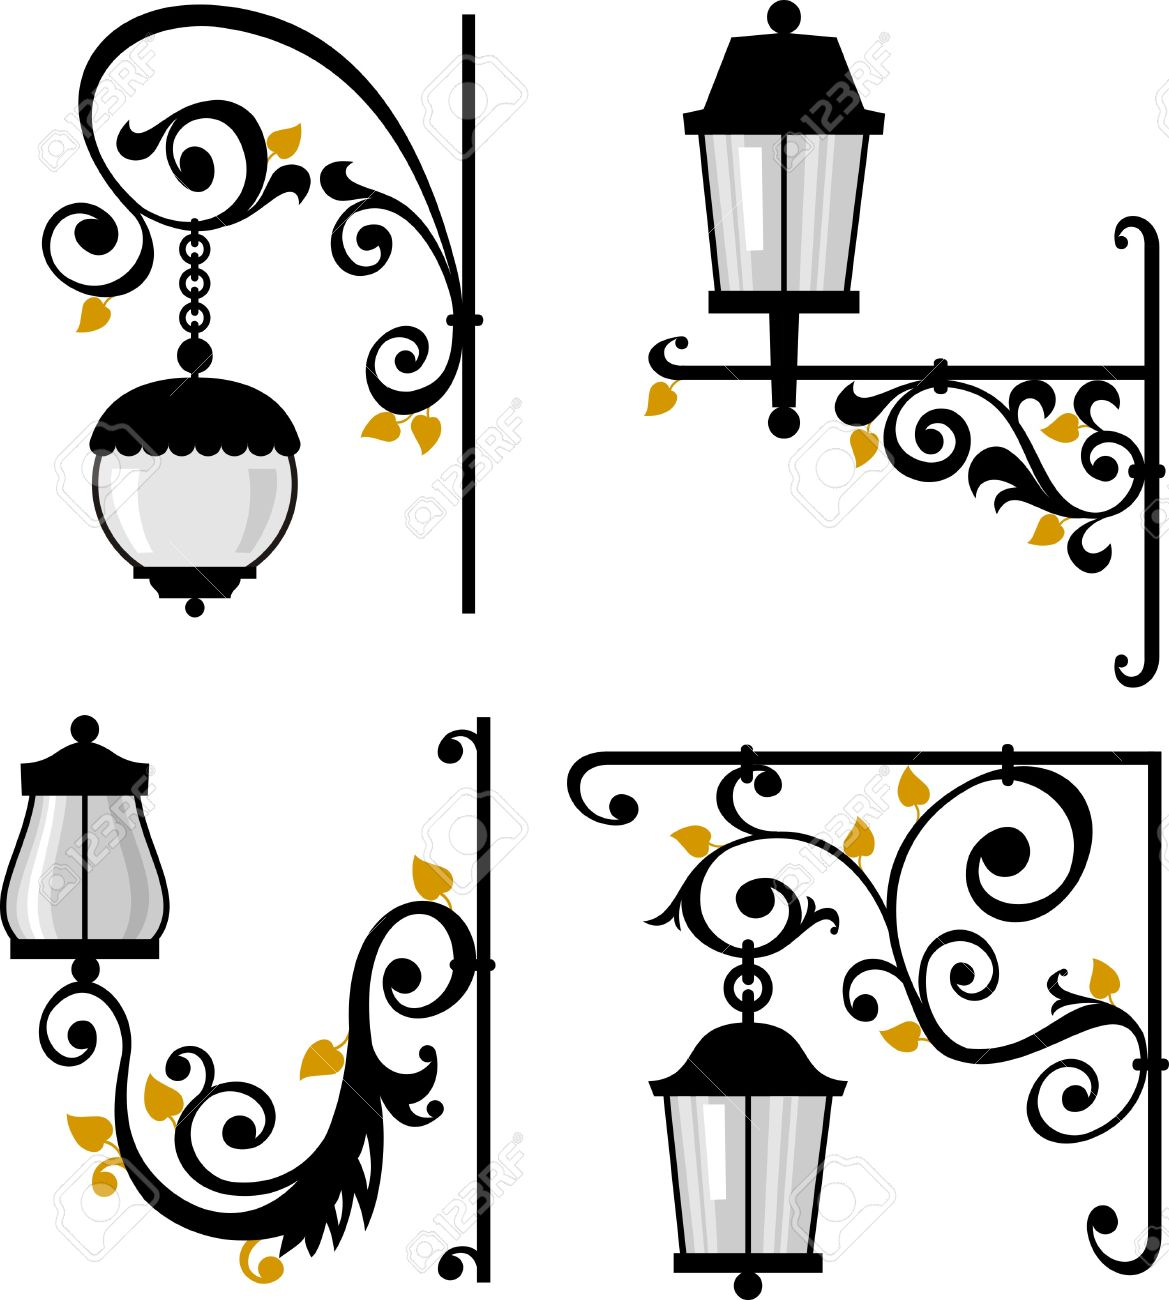 Lanterns Royalty Free Cliparts, Vectors, And Stock Illustration.